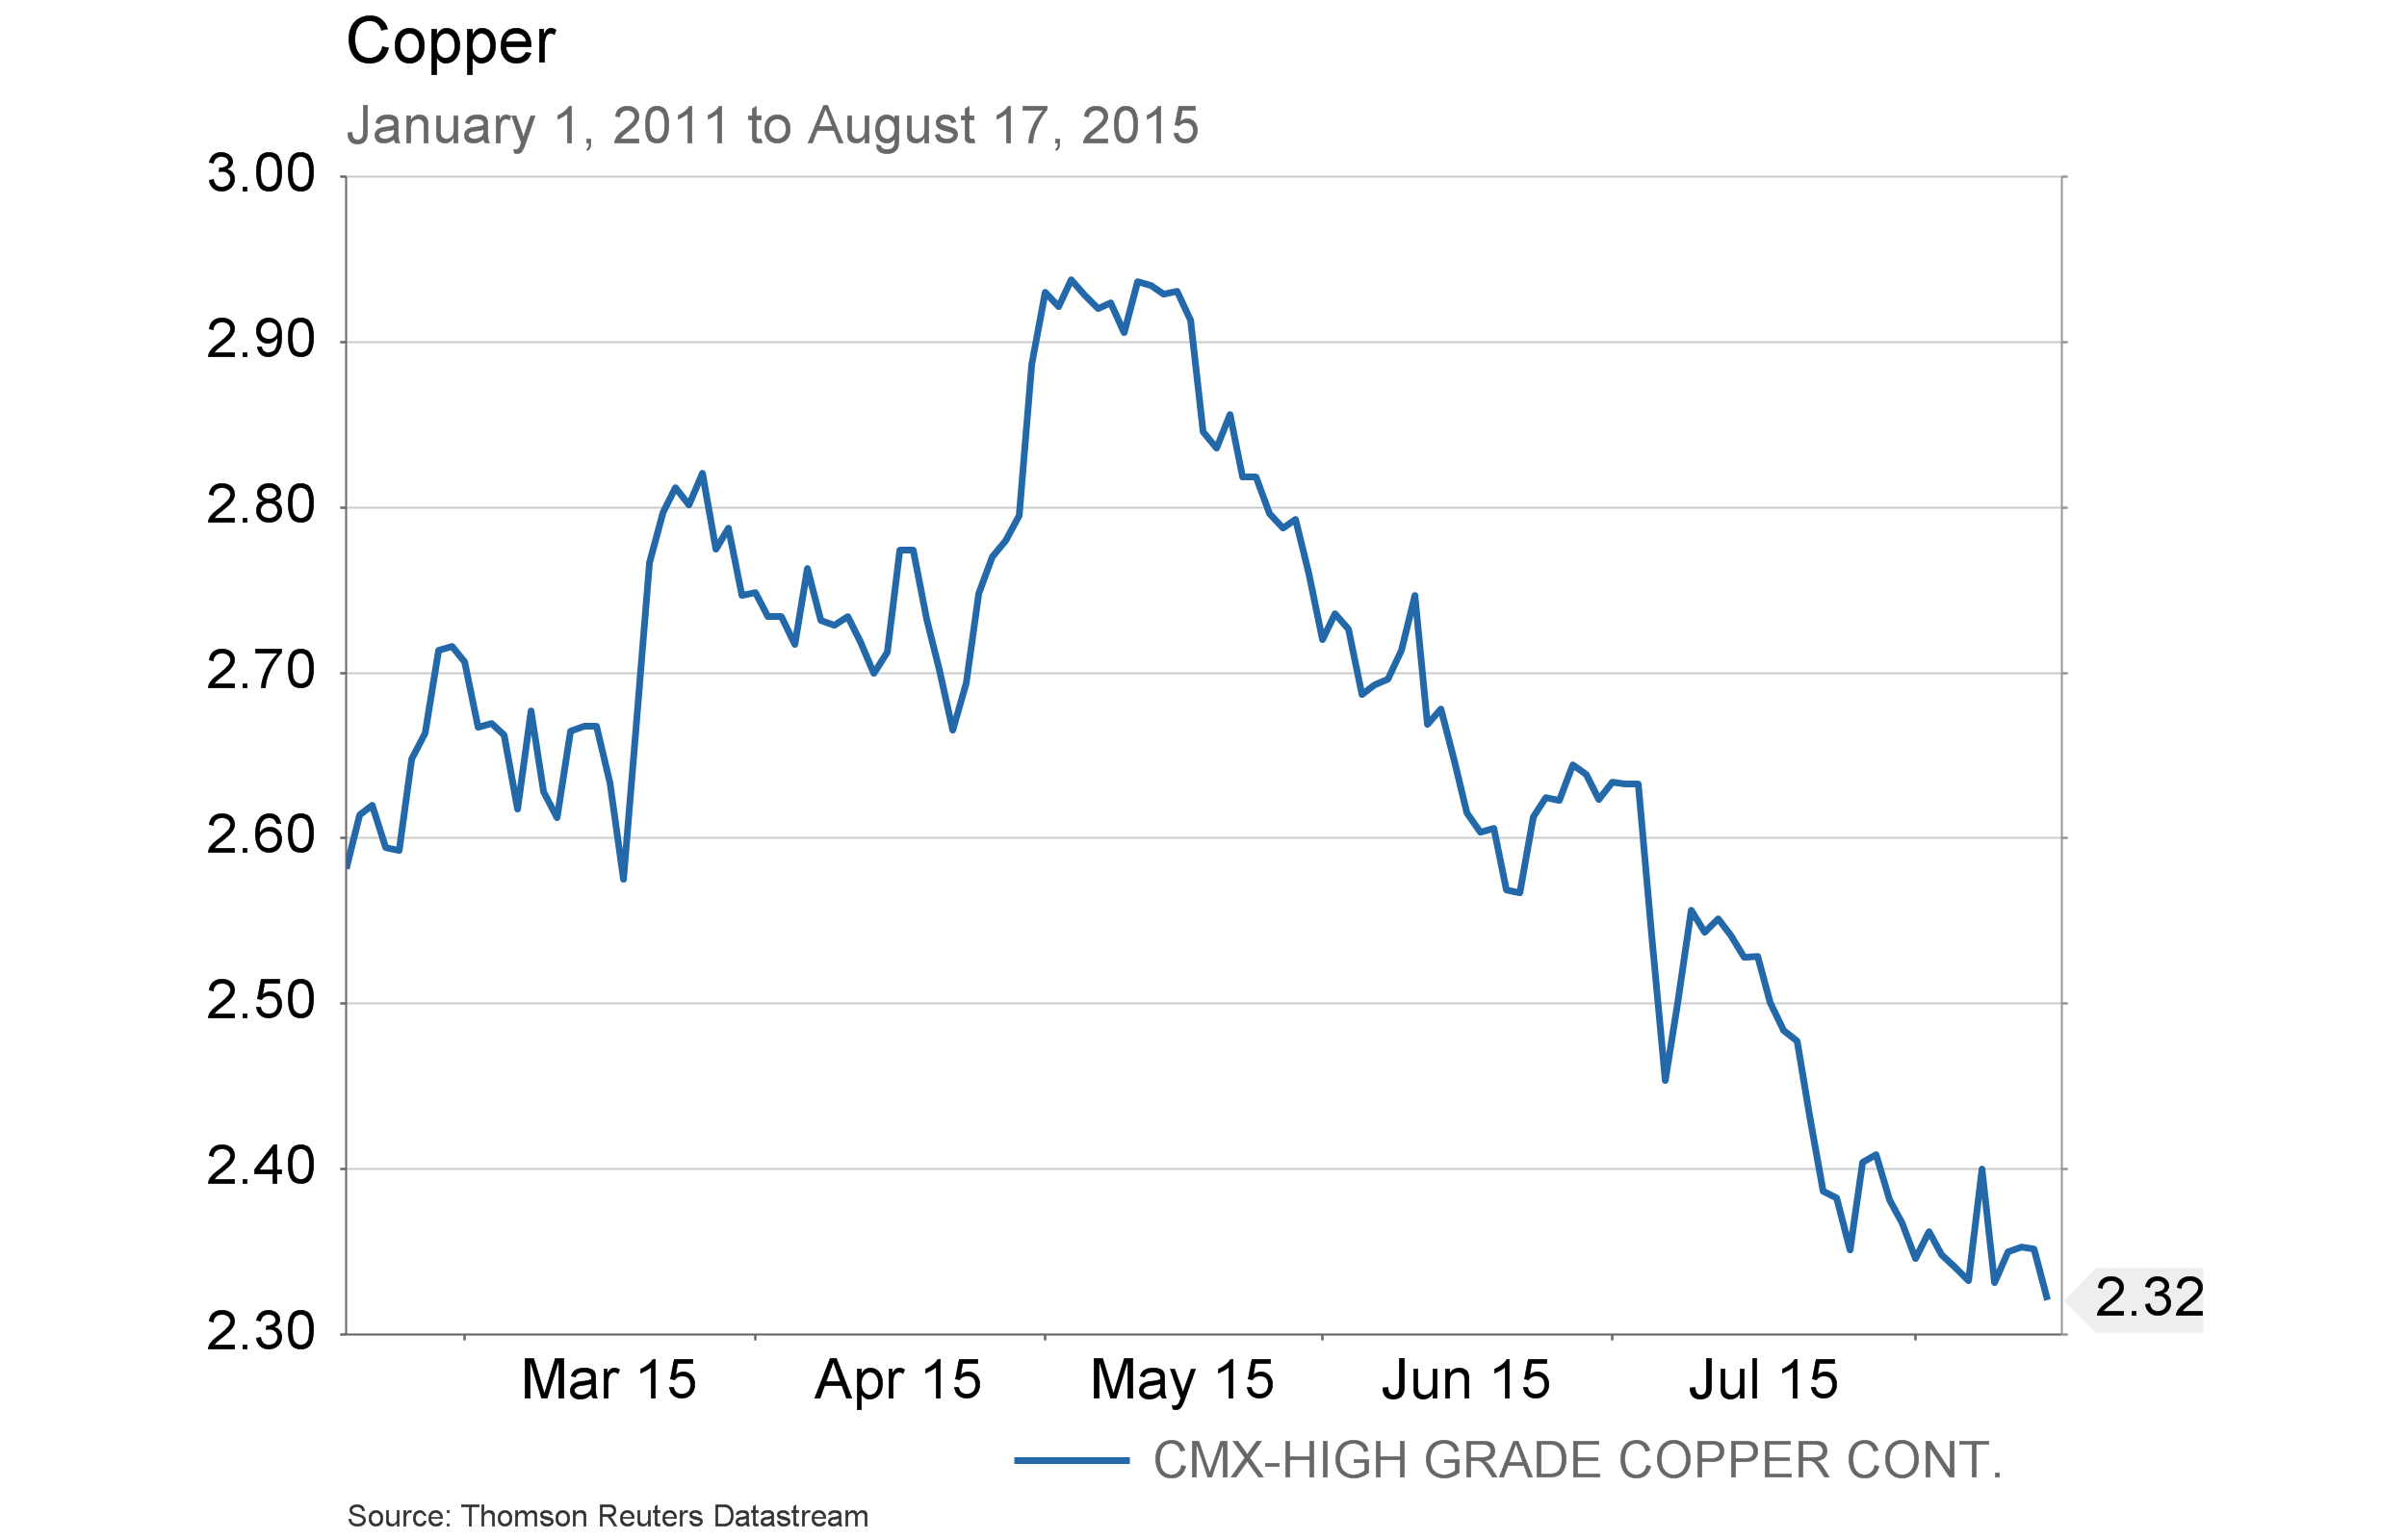 August 20, 2015 - Copper since 2011